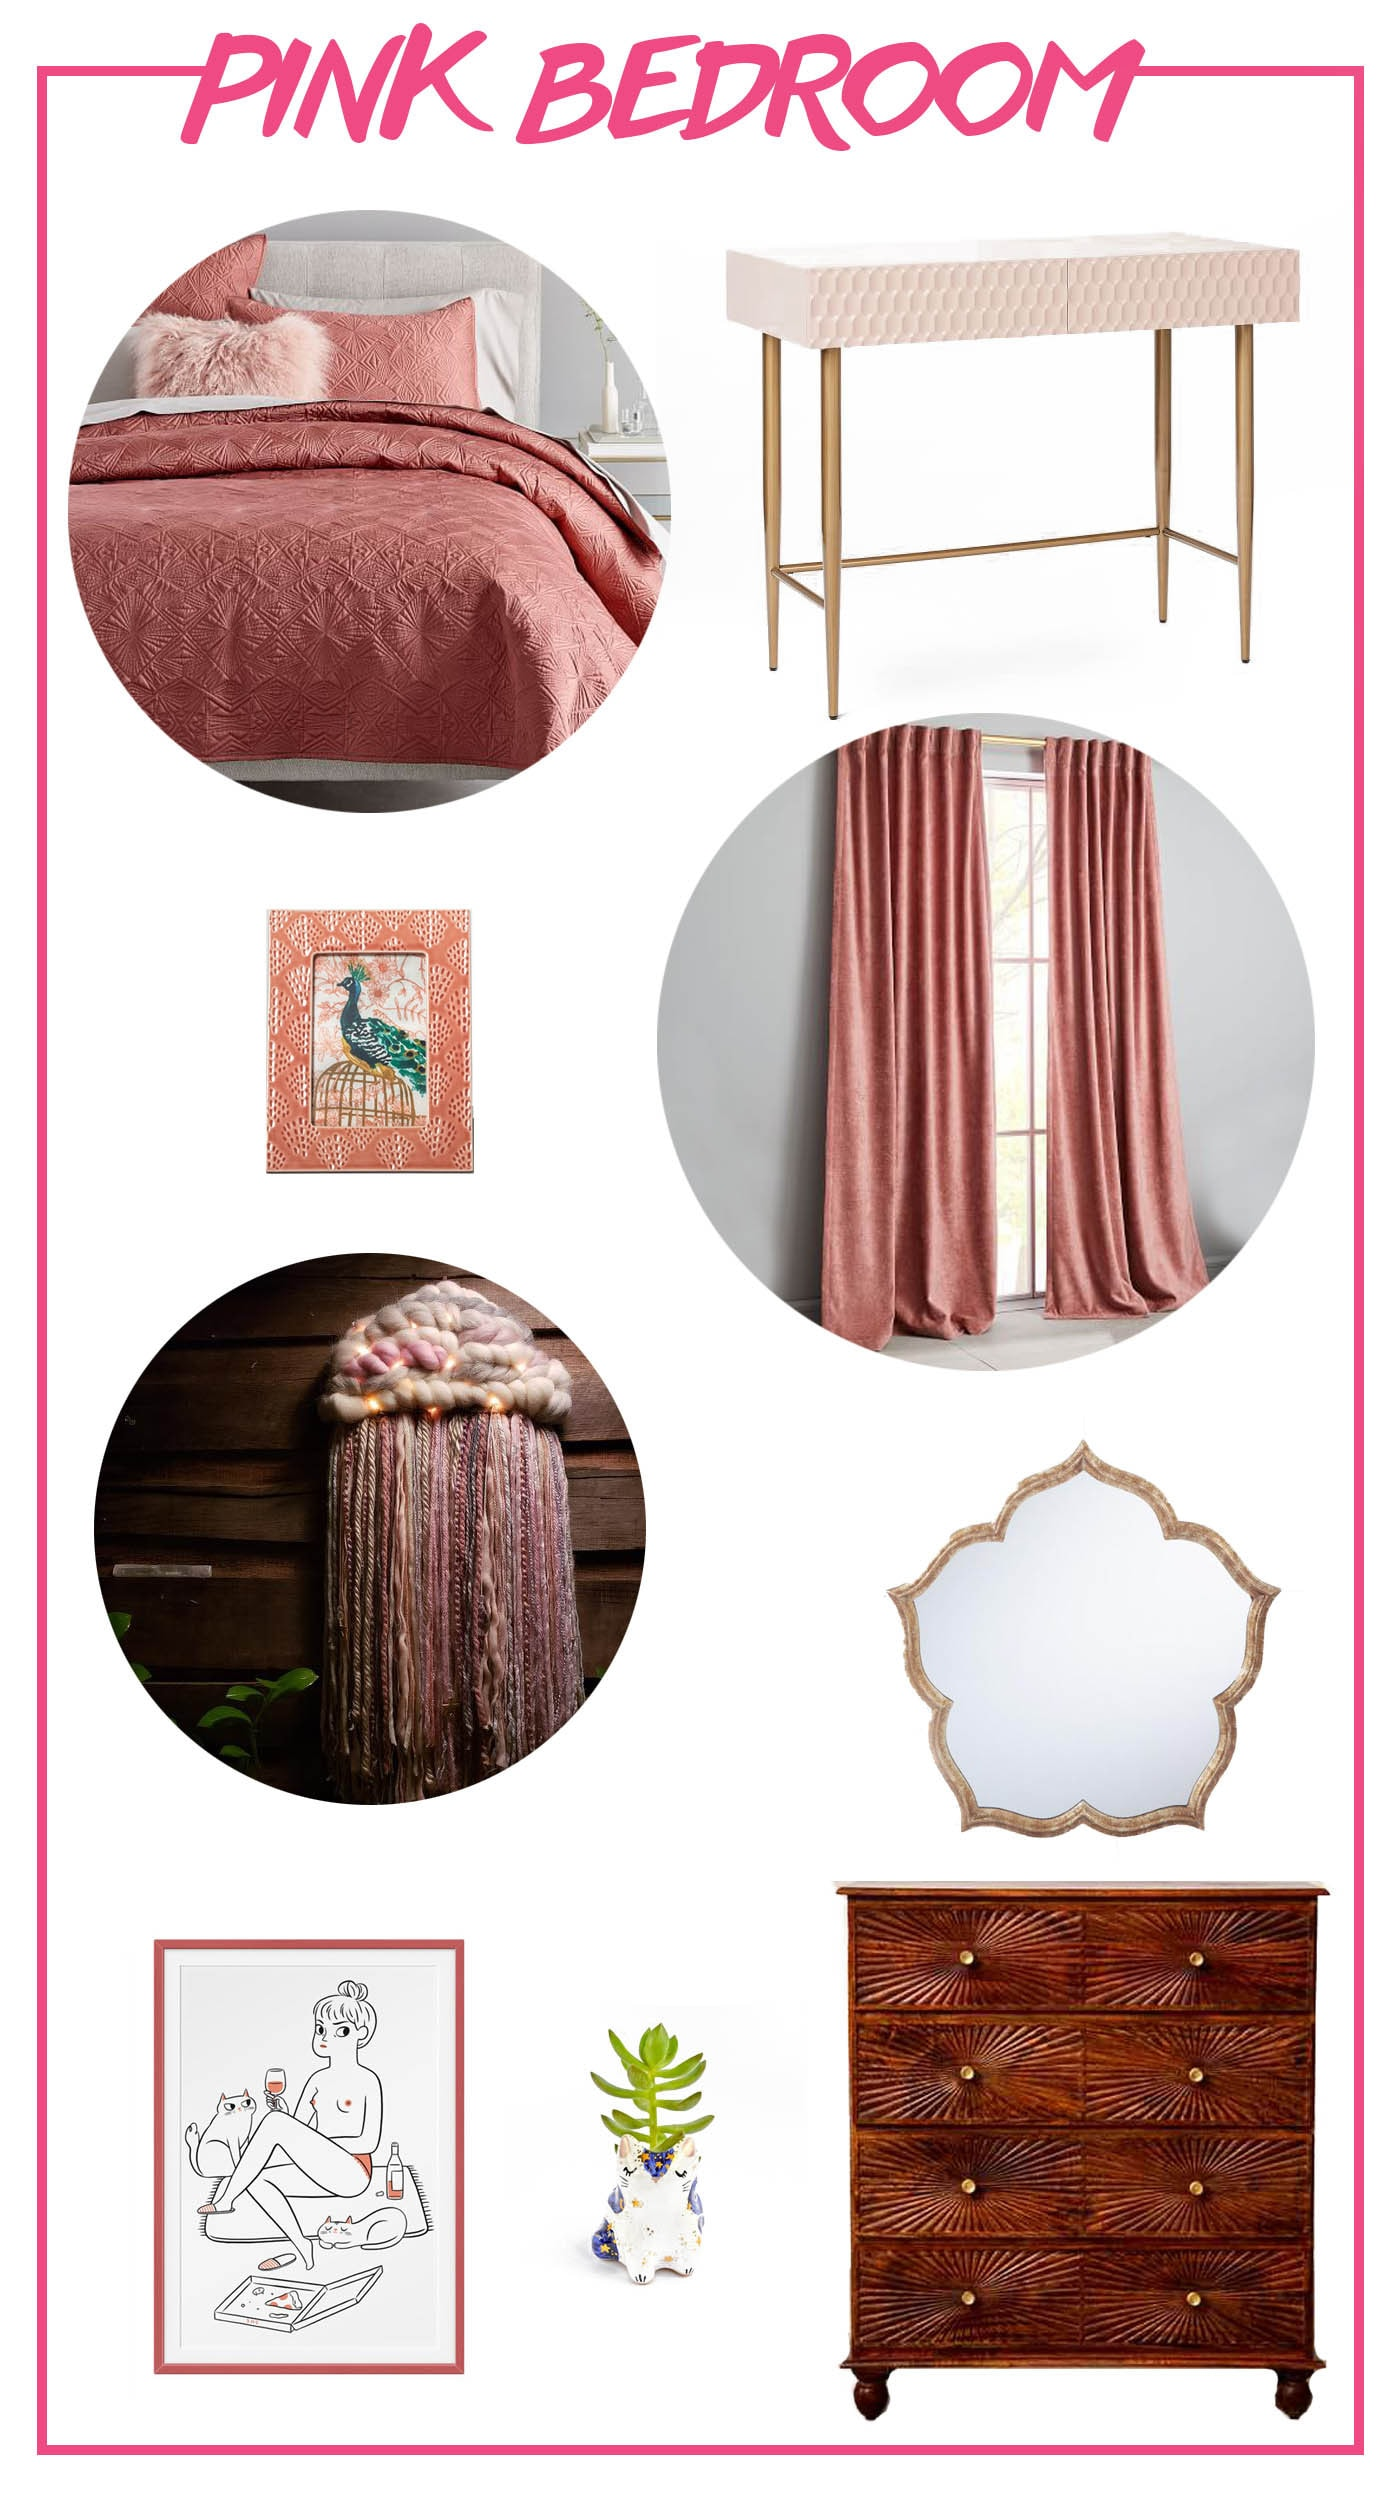 Wish list for a pink bedroom with a West Elm pink quilt and curtains, blush pink desk, and matching accessories and furniture.